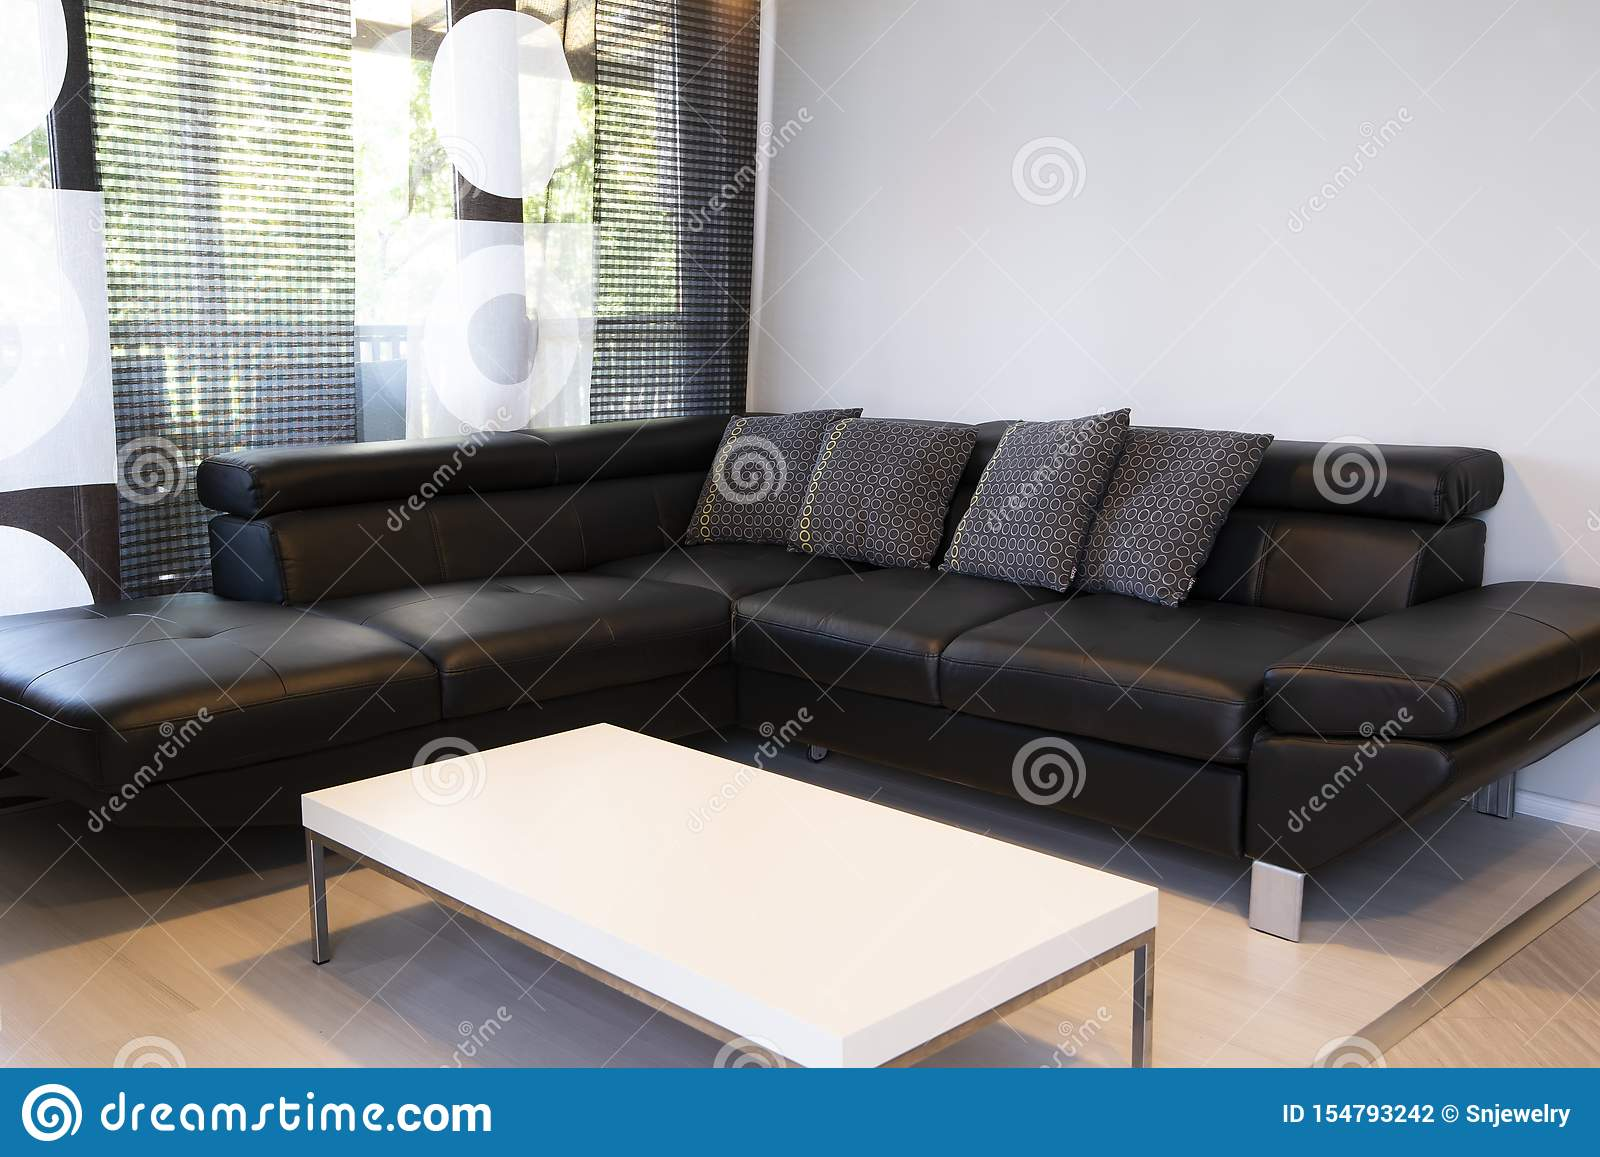 Modern Interior Of Living Room With Comfortable Black Leather Sofa Stock Photo Image Of Background Indoor 154793242